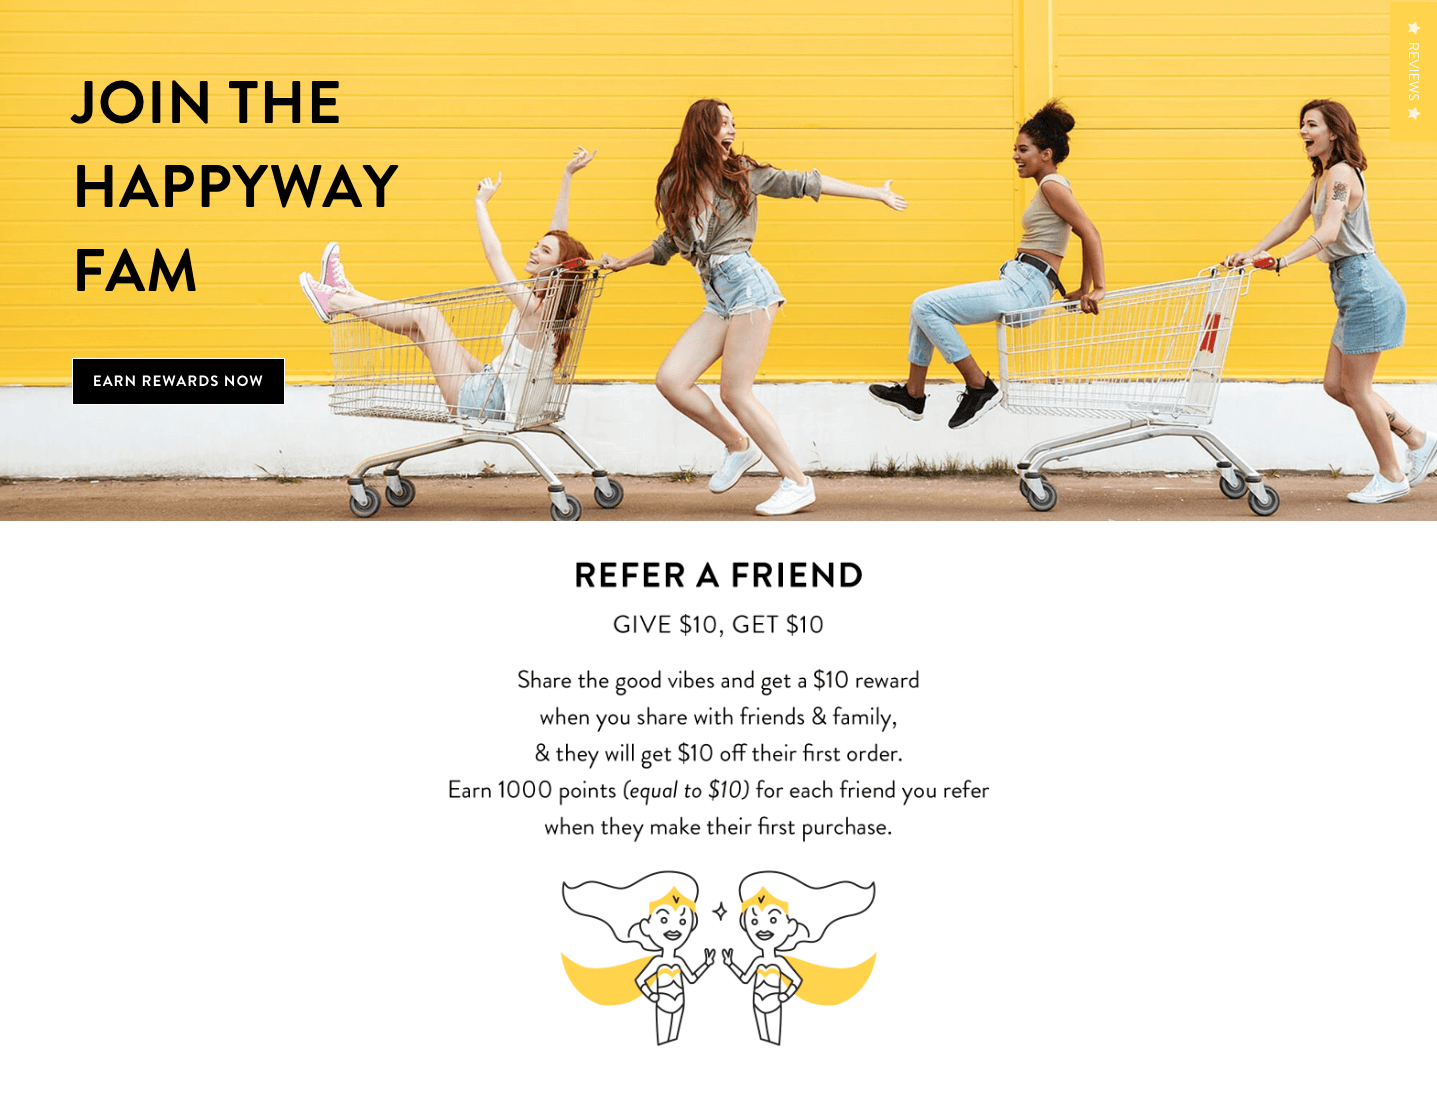 Happyway rewards refer-a-friend description